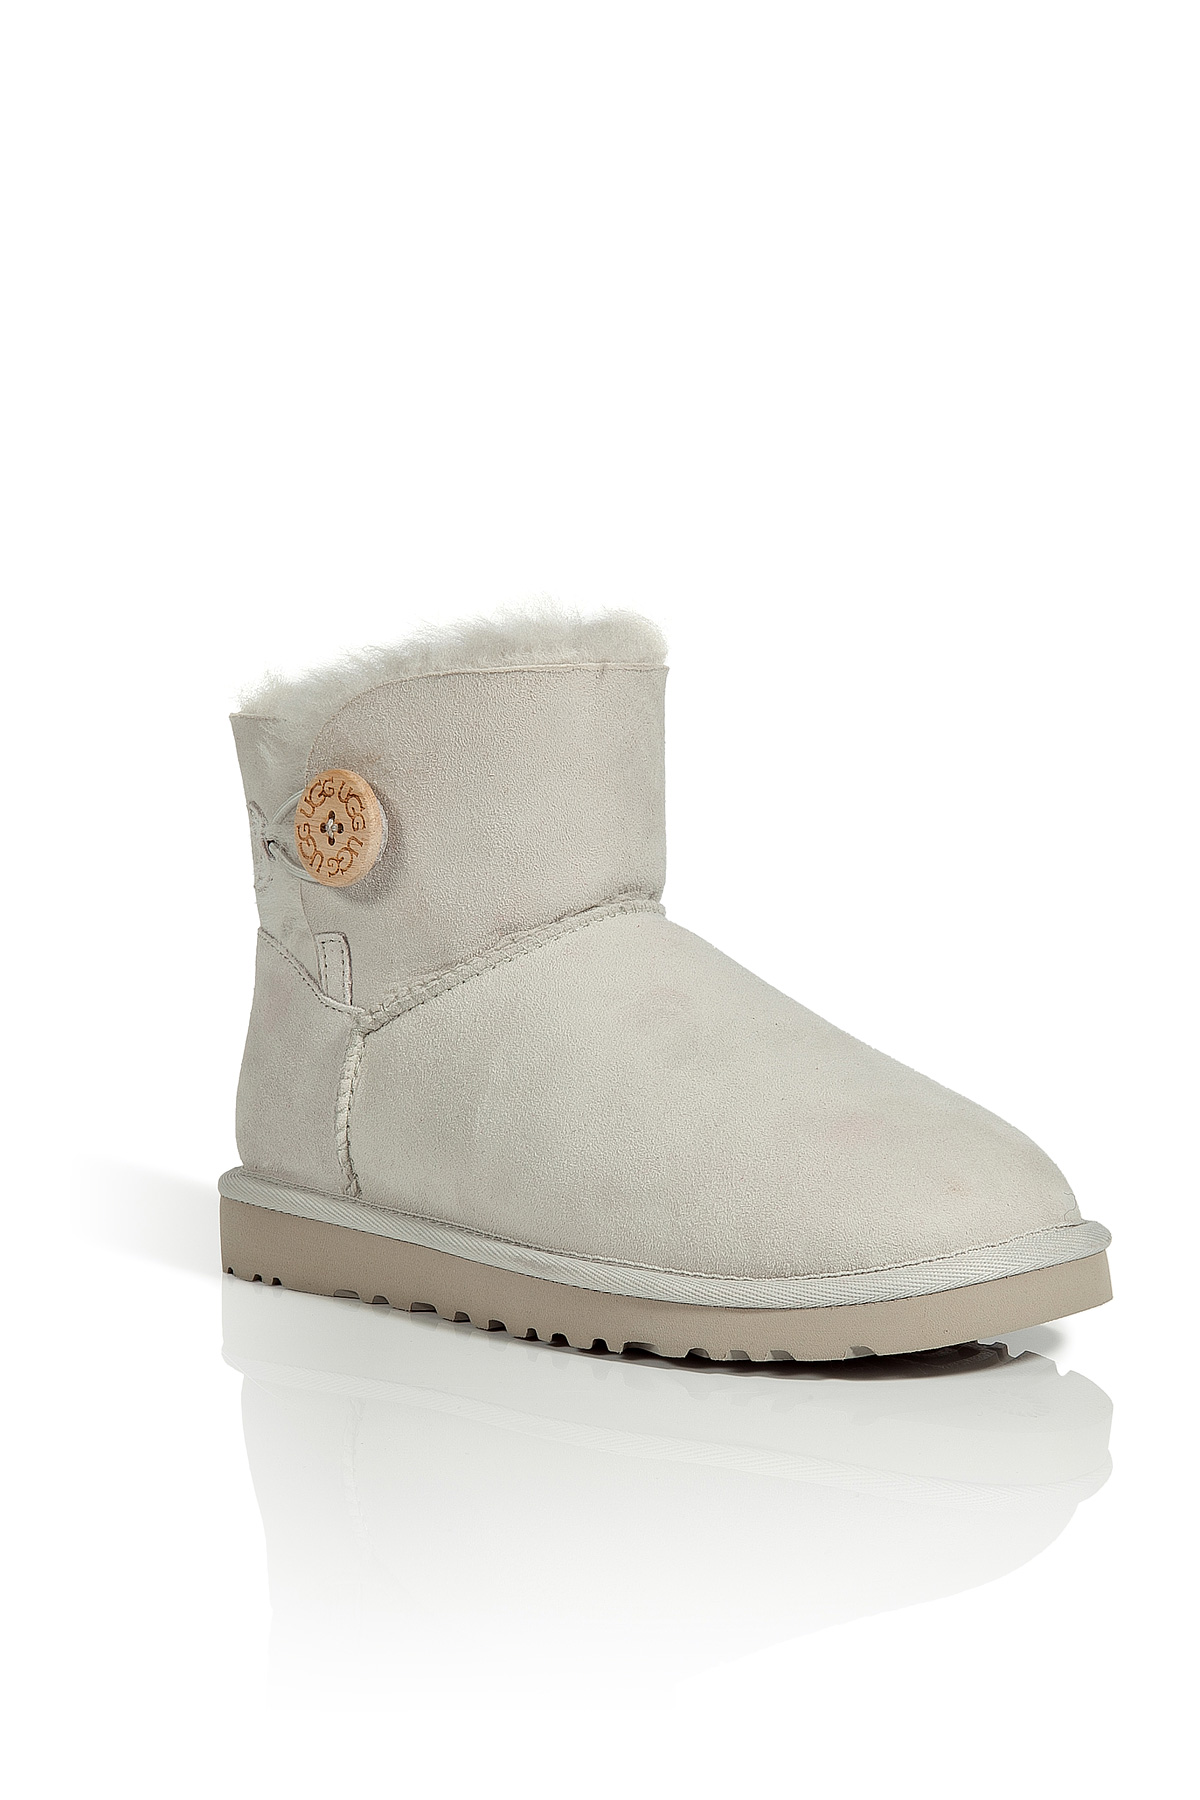 ugg one button bailey boot